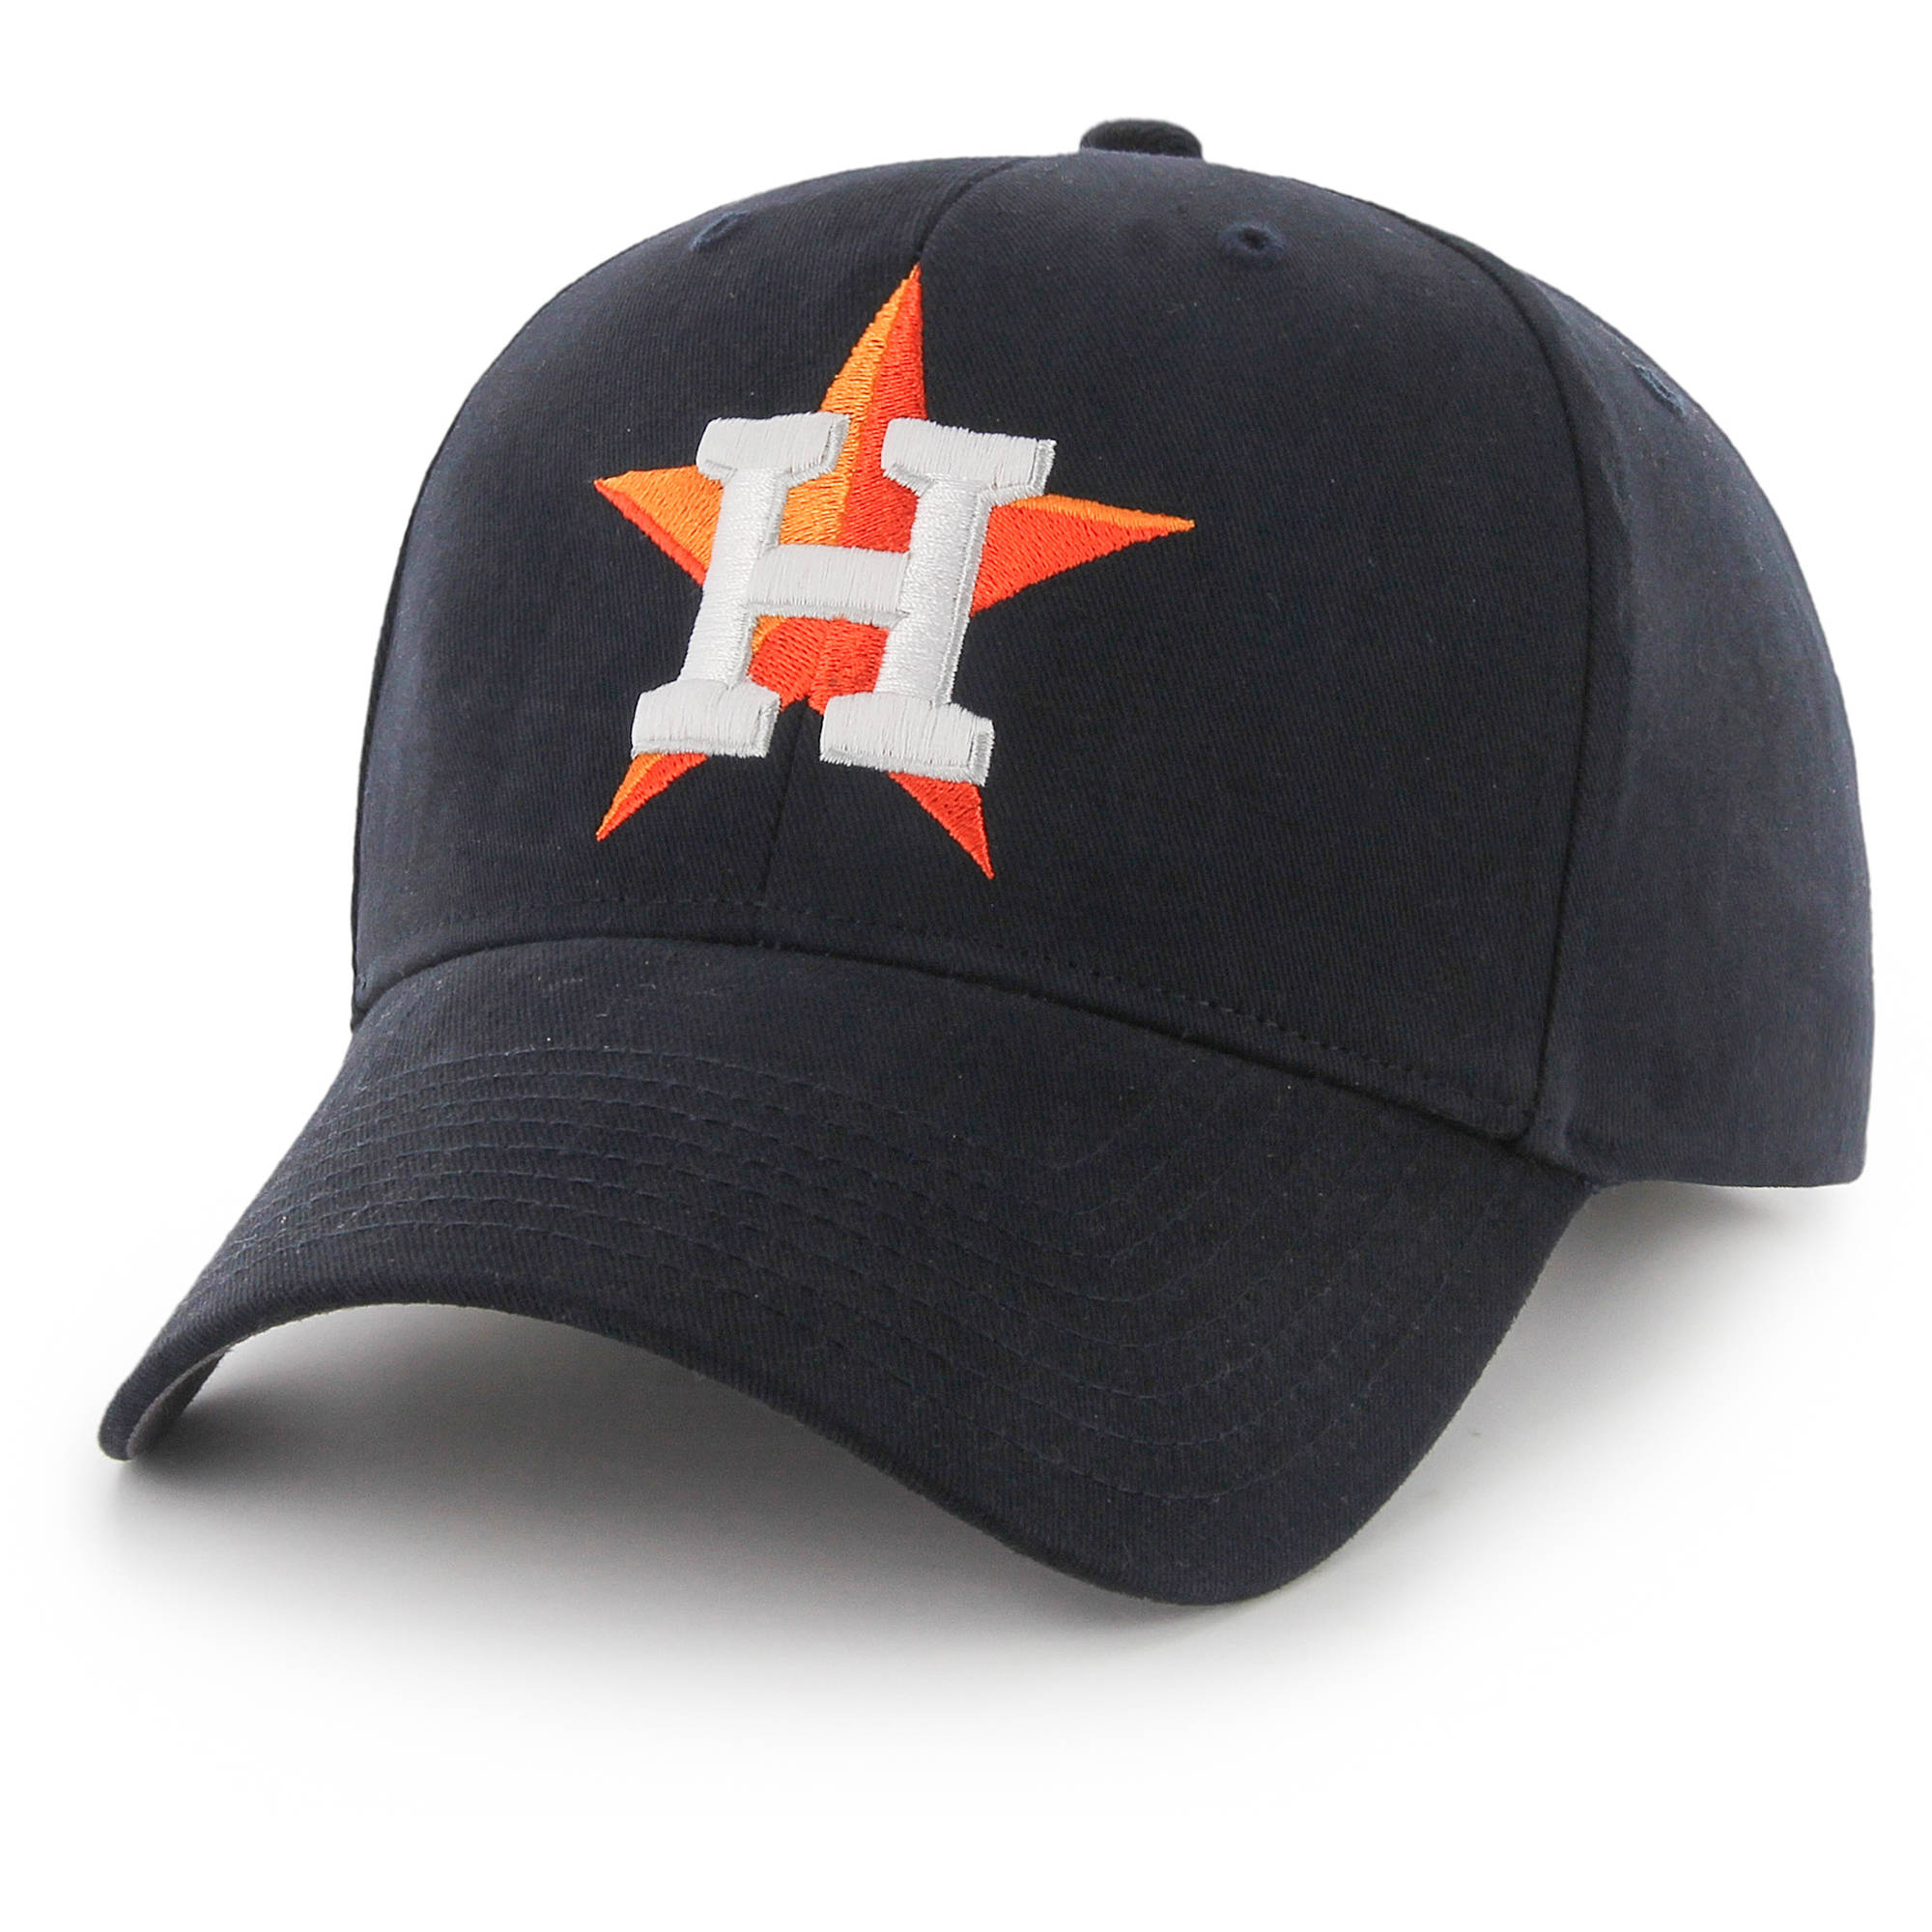 Houston Astros '47 Basic Adjustable Hat - Navy - OSFA